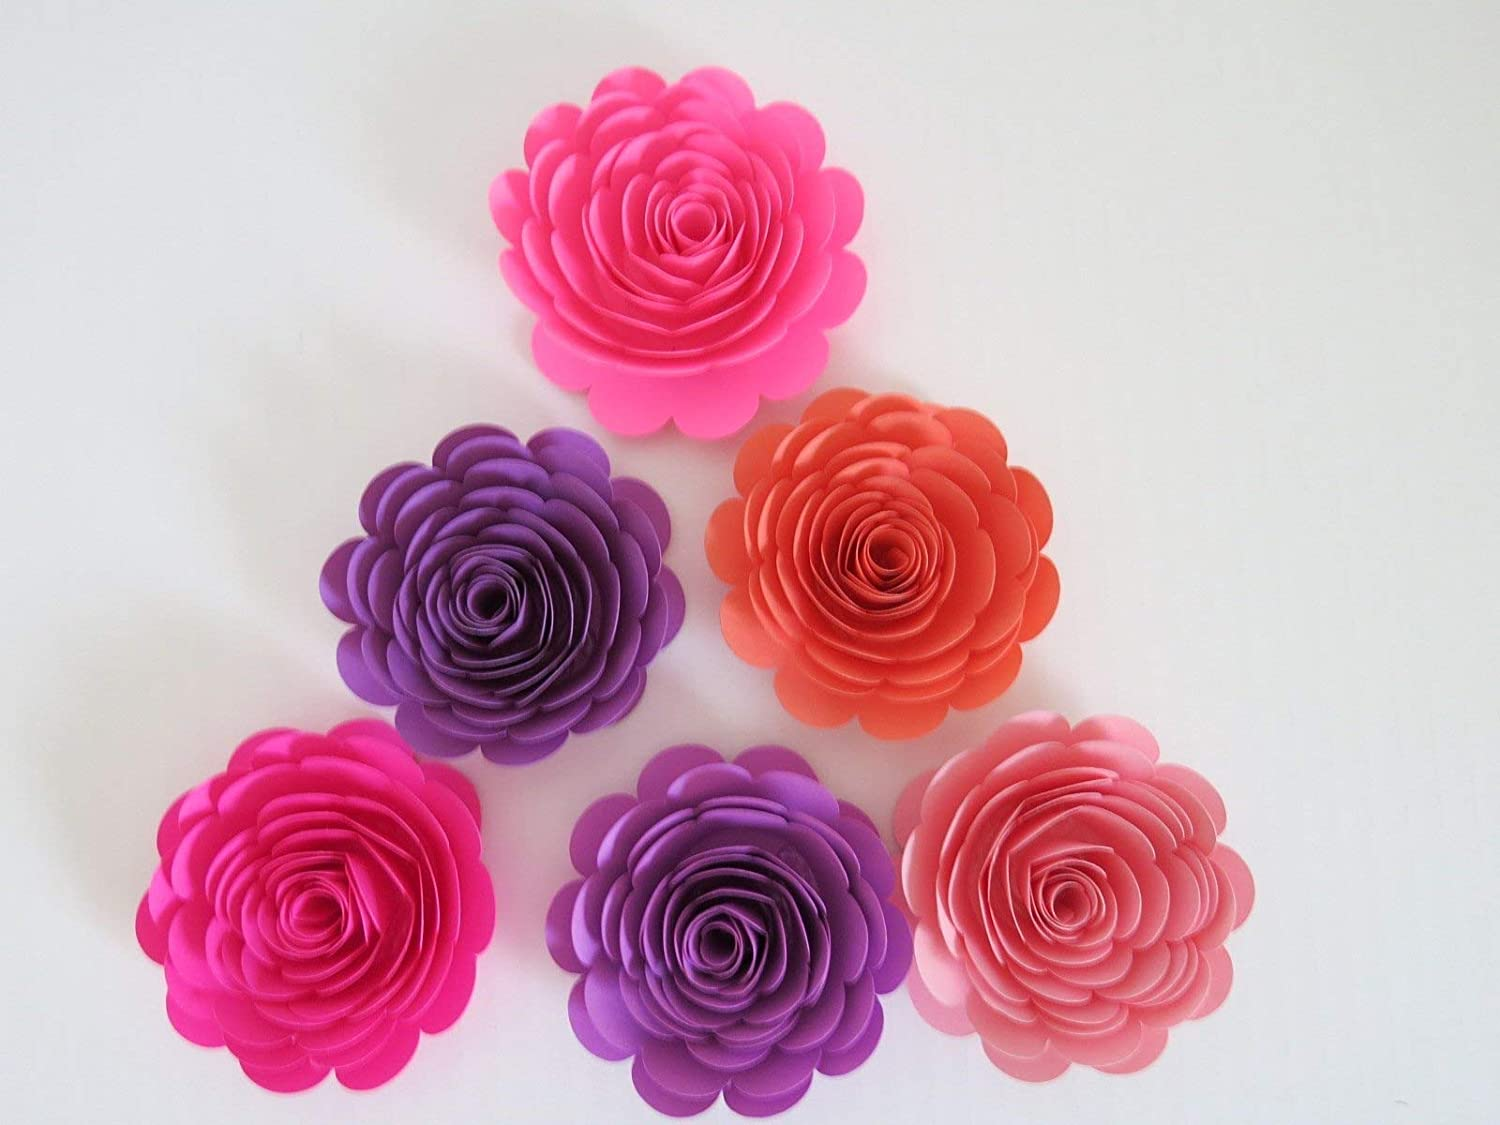 Pink And Purple Paper Flowers Set Of 6 3 Roses Princess Theme Room Decor Birthday Party Decorations Nursery Wall Art Girl Bedroom Accent